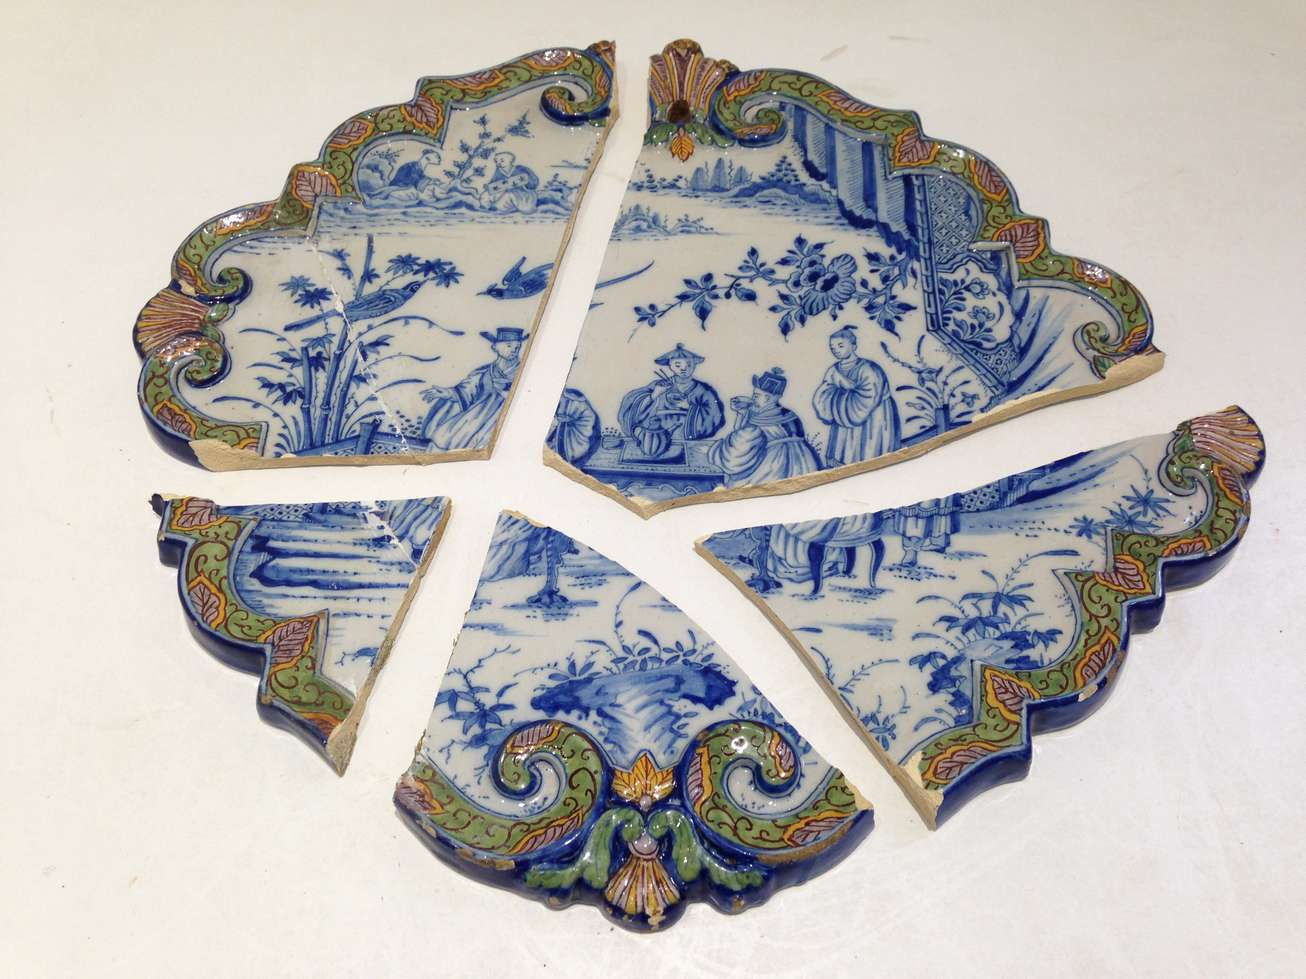 reparation faience plat